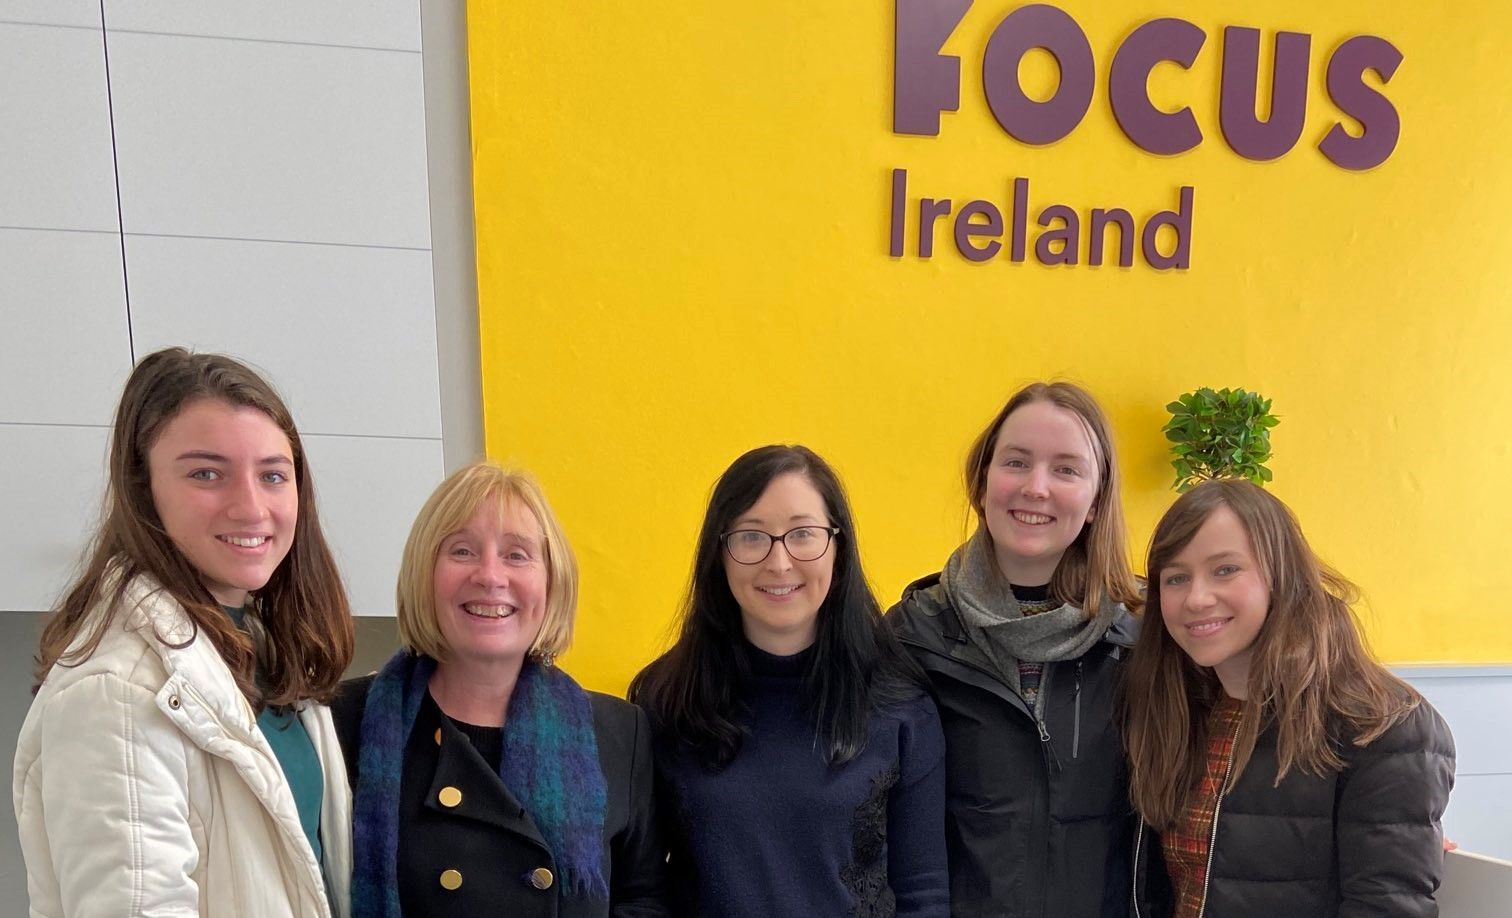 Visiting the Focus Family Services Centre